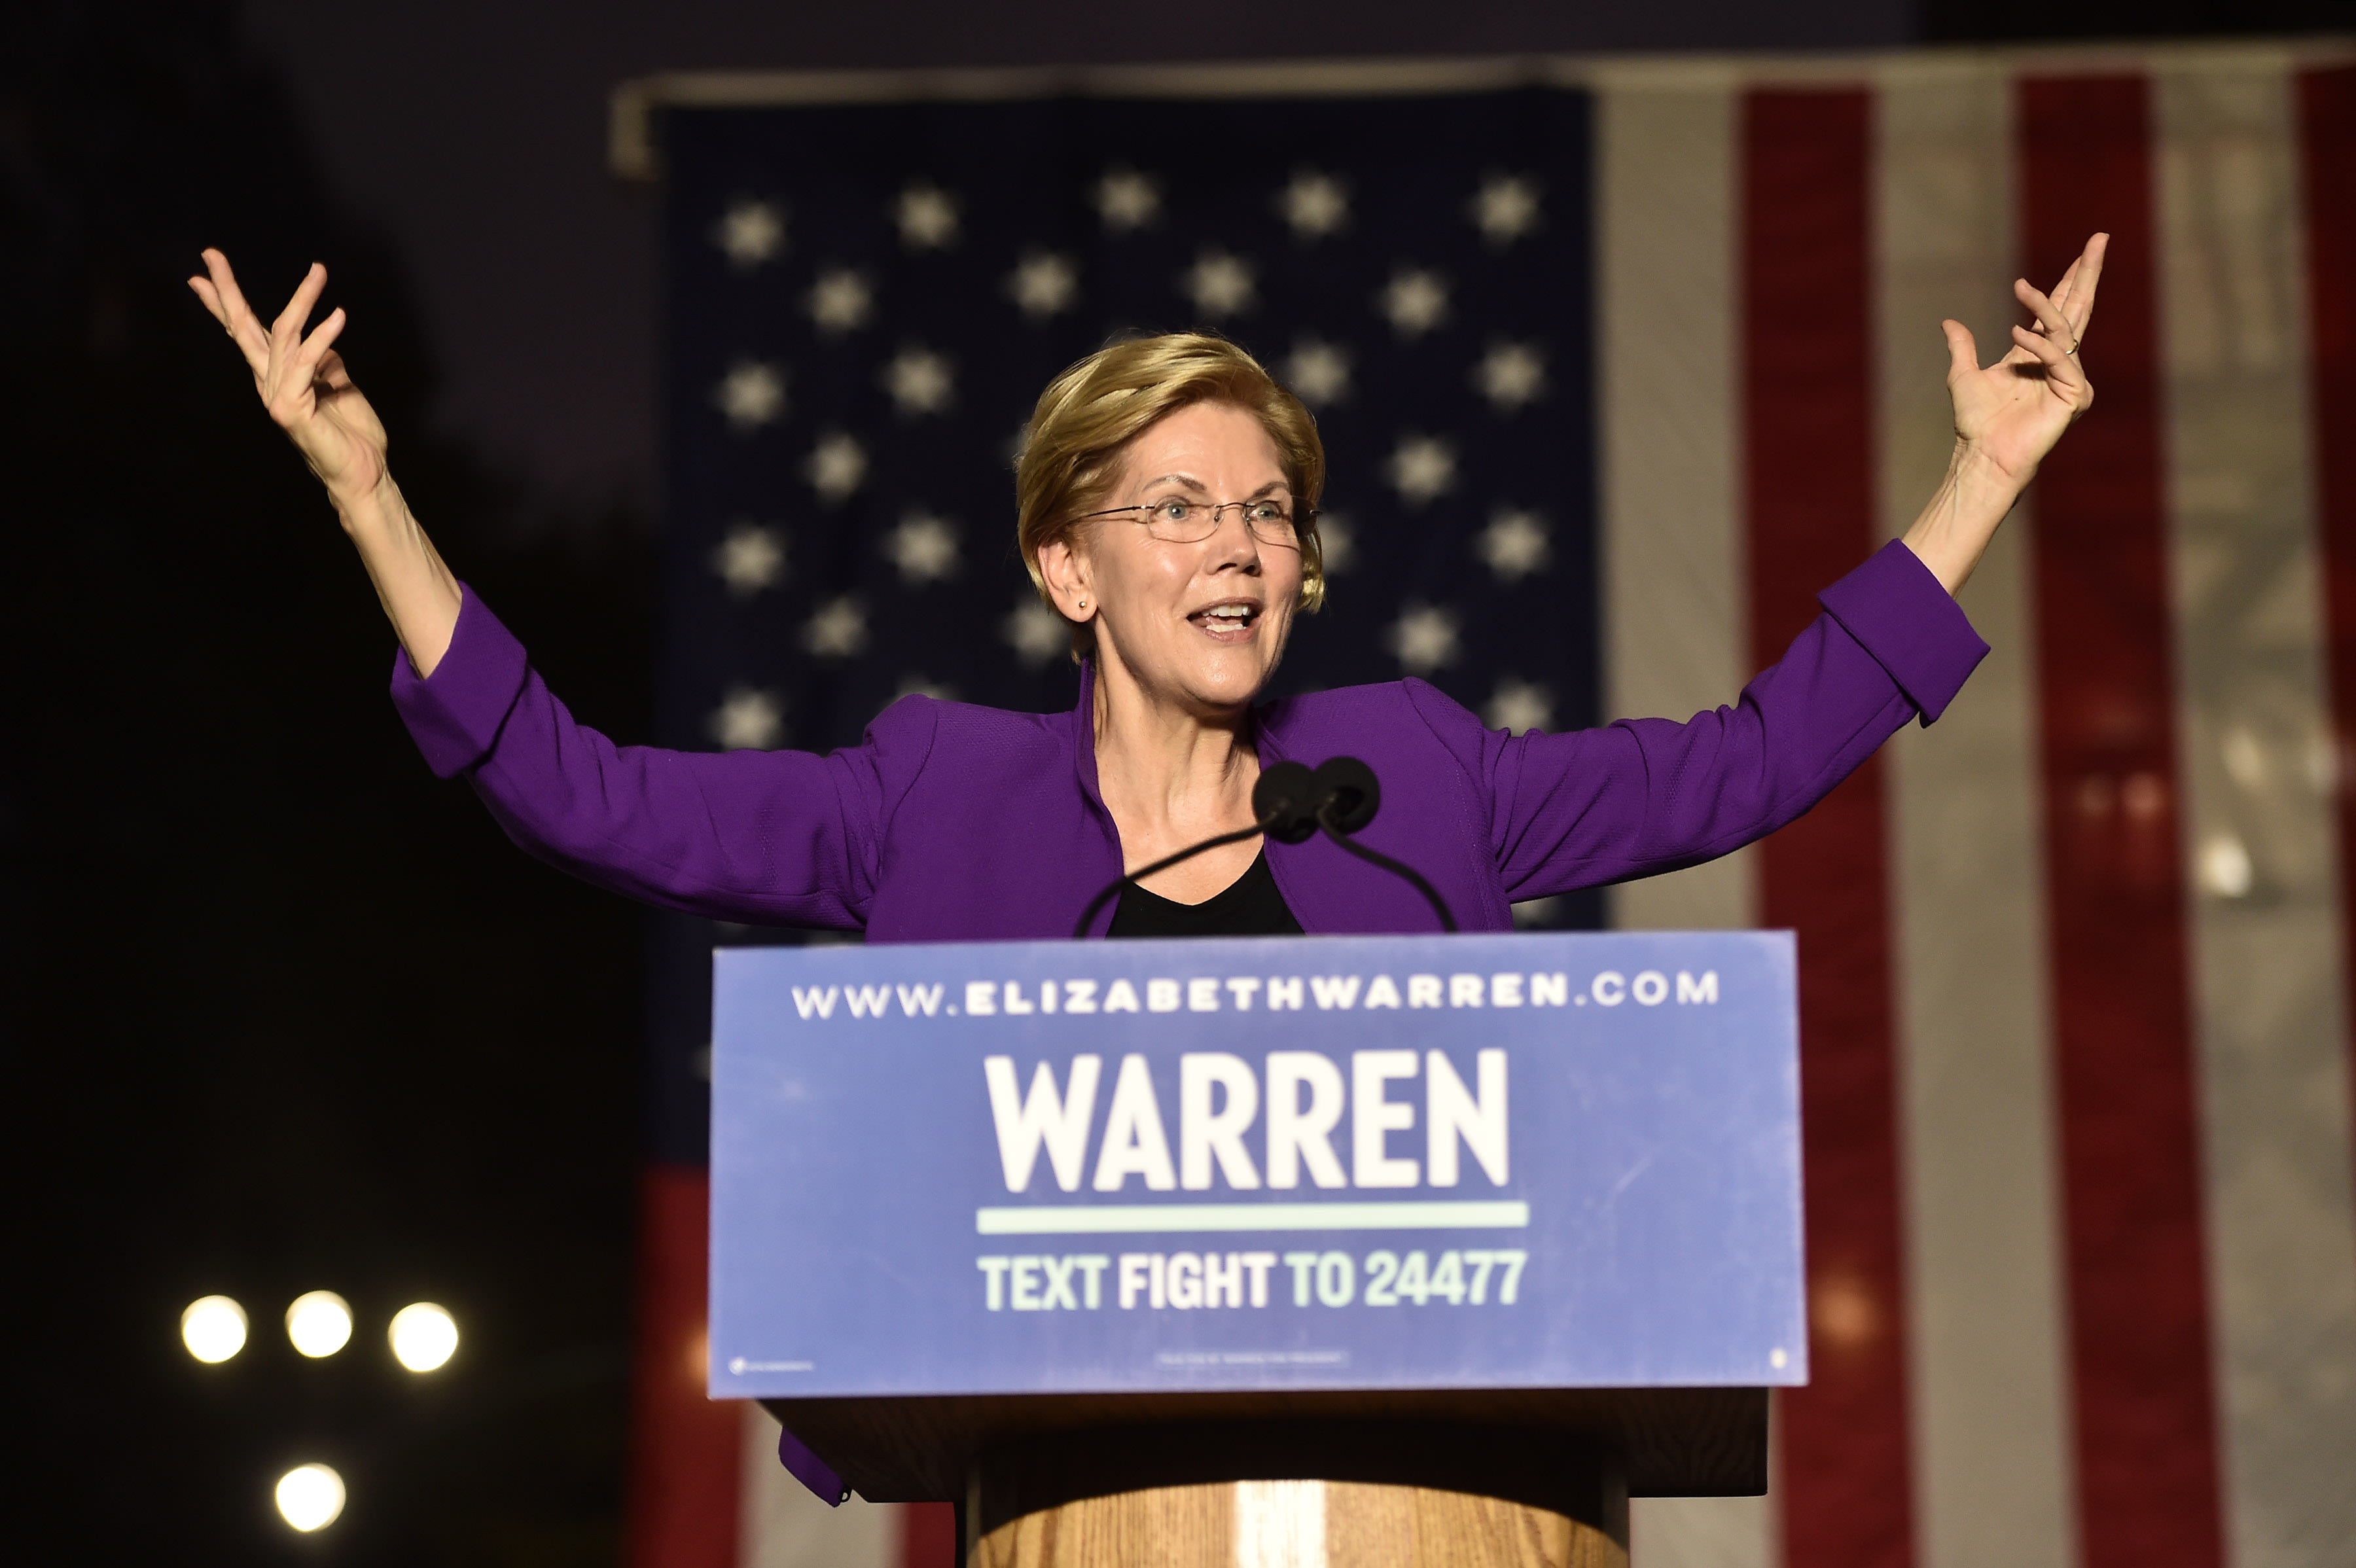 An Elizabeth Warren presidency may not be as bad for stocks as some investors fear, strategist says